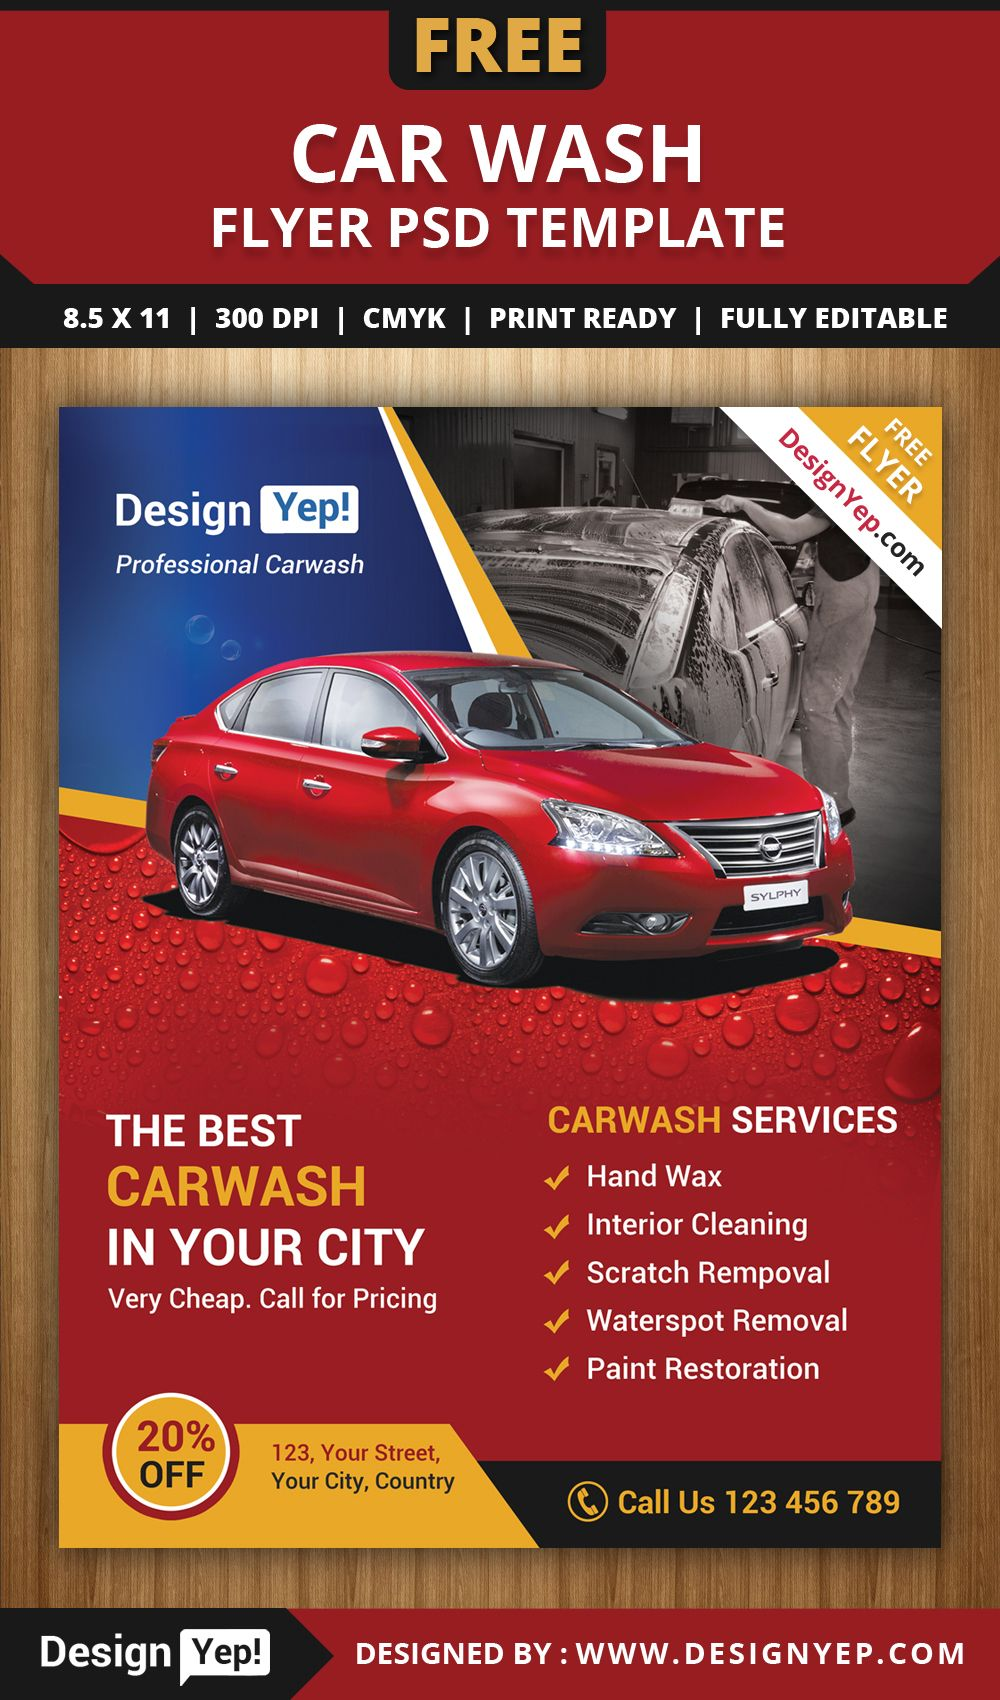 Free Car Wash Flyer PSD Template 3232 Designyep  Flyer Outline